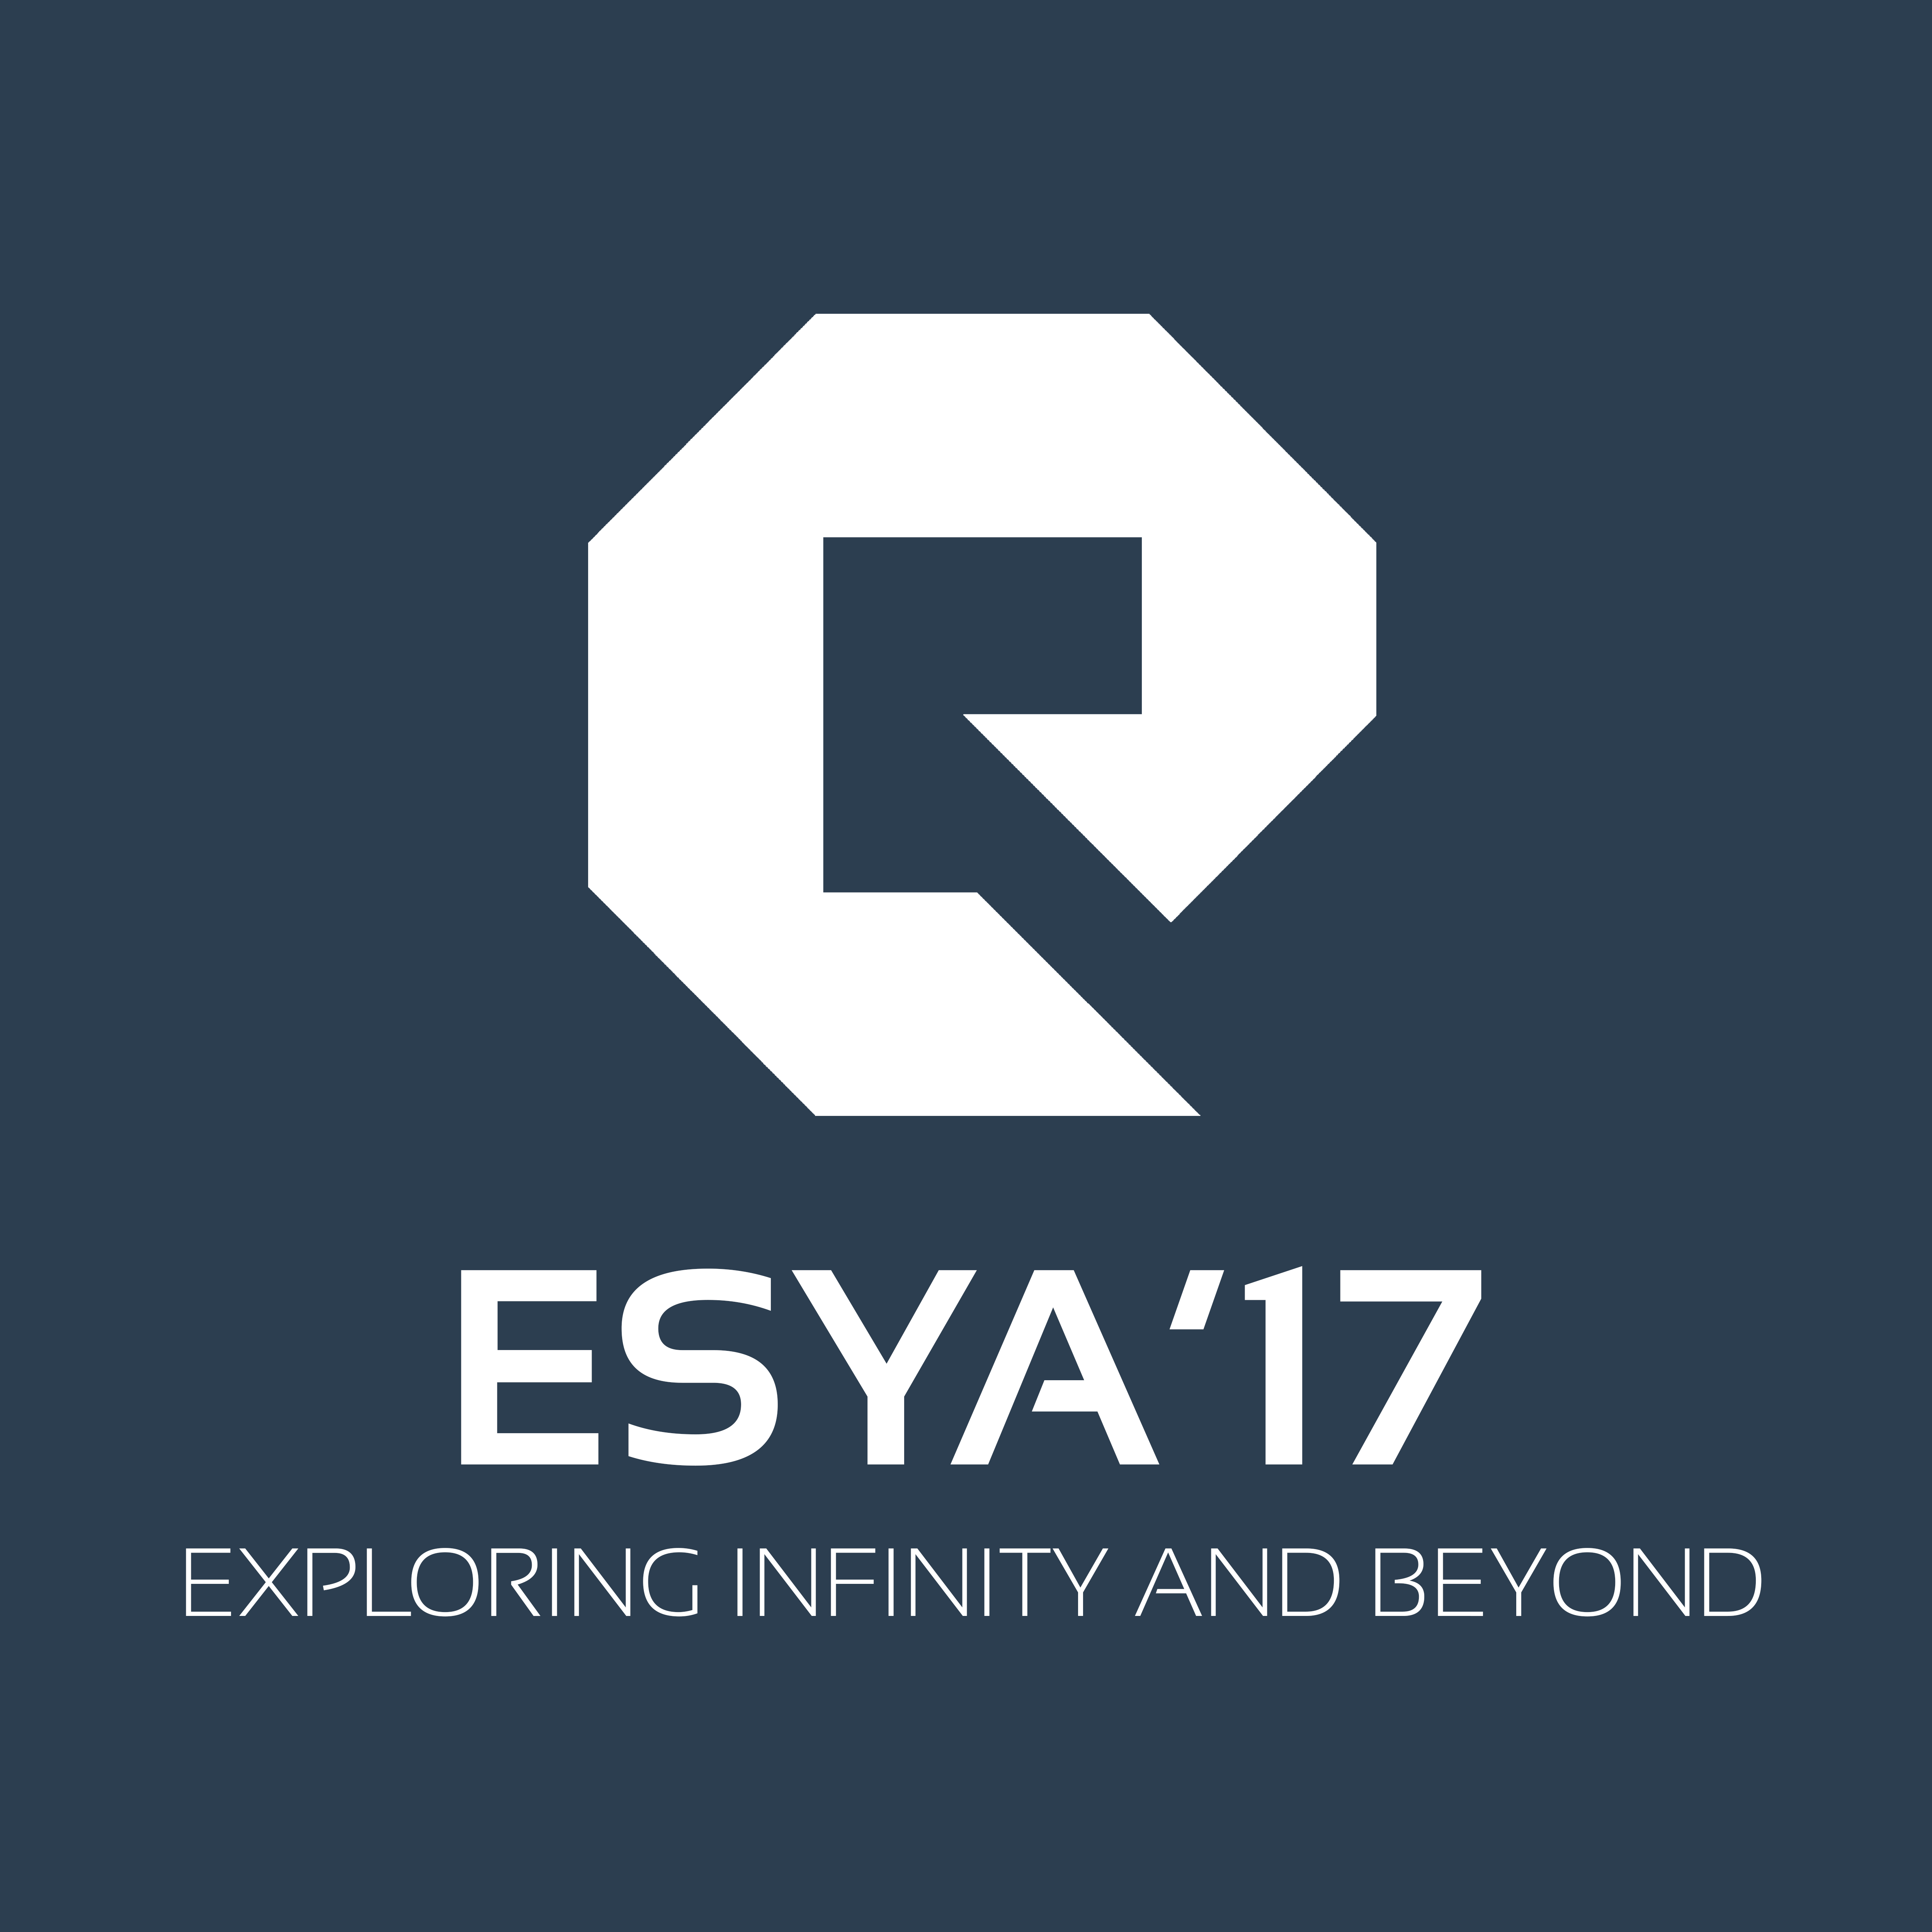 Web Development for Esya'17